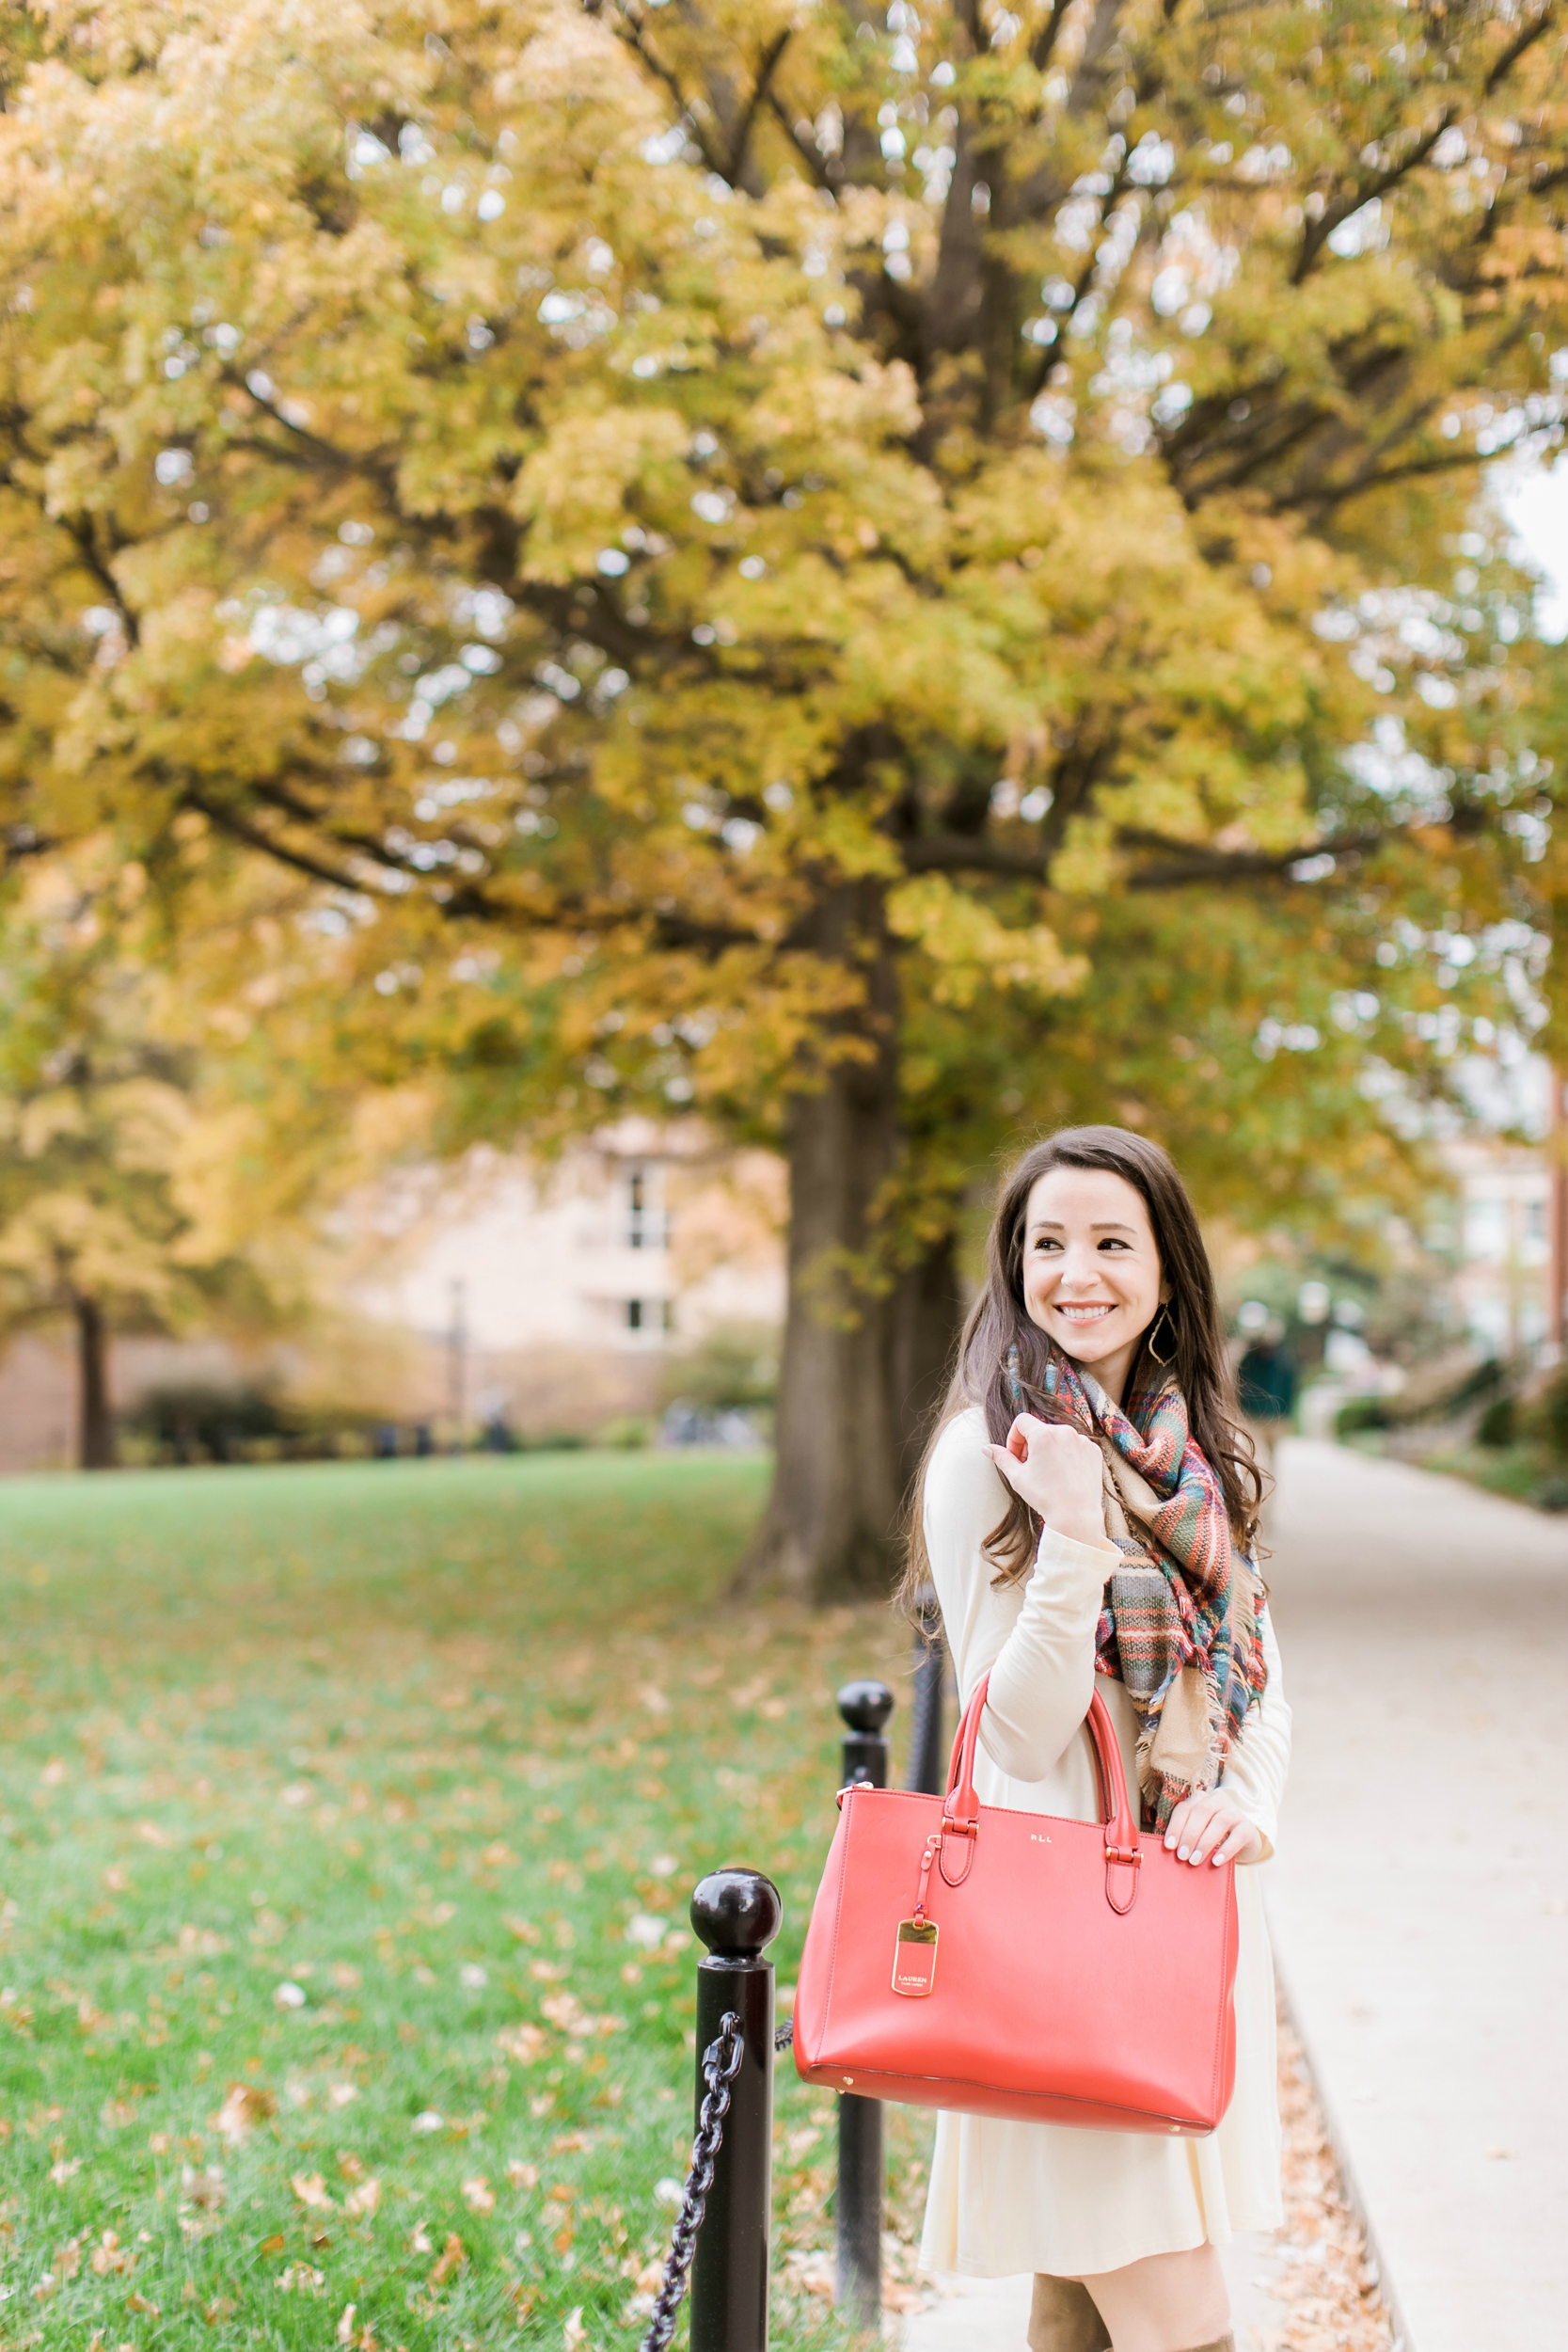 Beige cotton swing dress with tartan blanket scarf, Free People cognac OTK boots, red Ralph Lauren handbag, and Kendra Scott Sophee earrings | Casual holiday outfit idea | 10 tips for looking your best on camera | Tips for Looking Your Best in Holiday Photos from fashion blogger Stephanie Ziajka of Diary of a Debutante